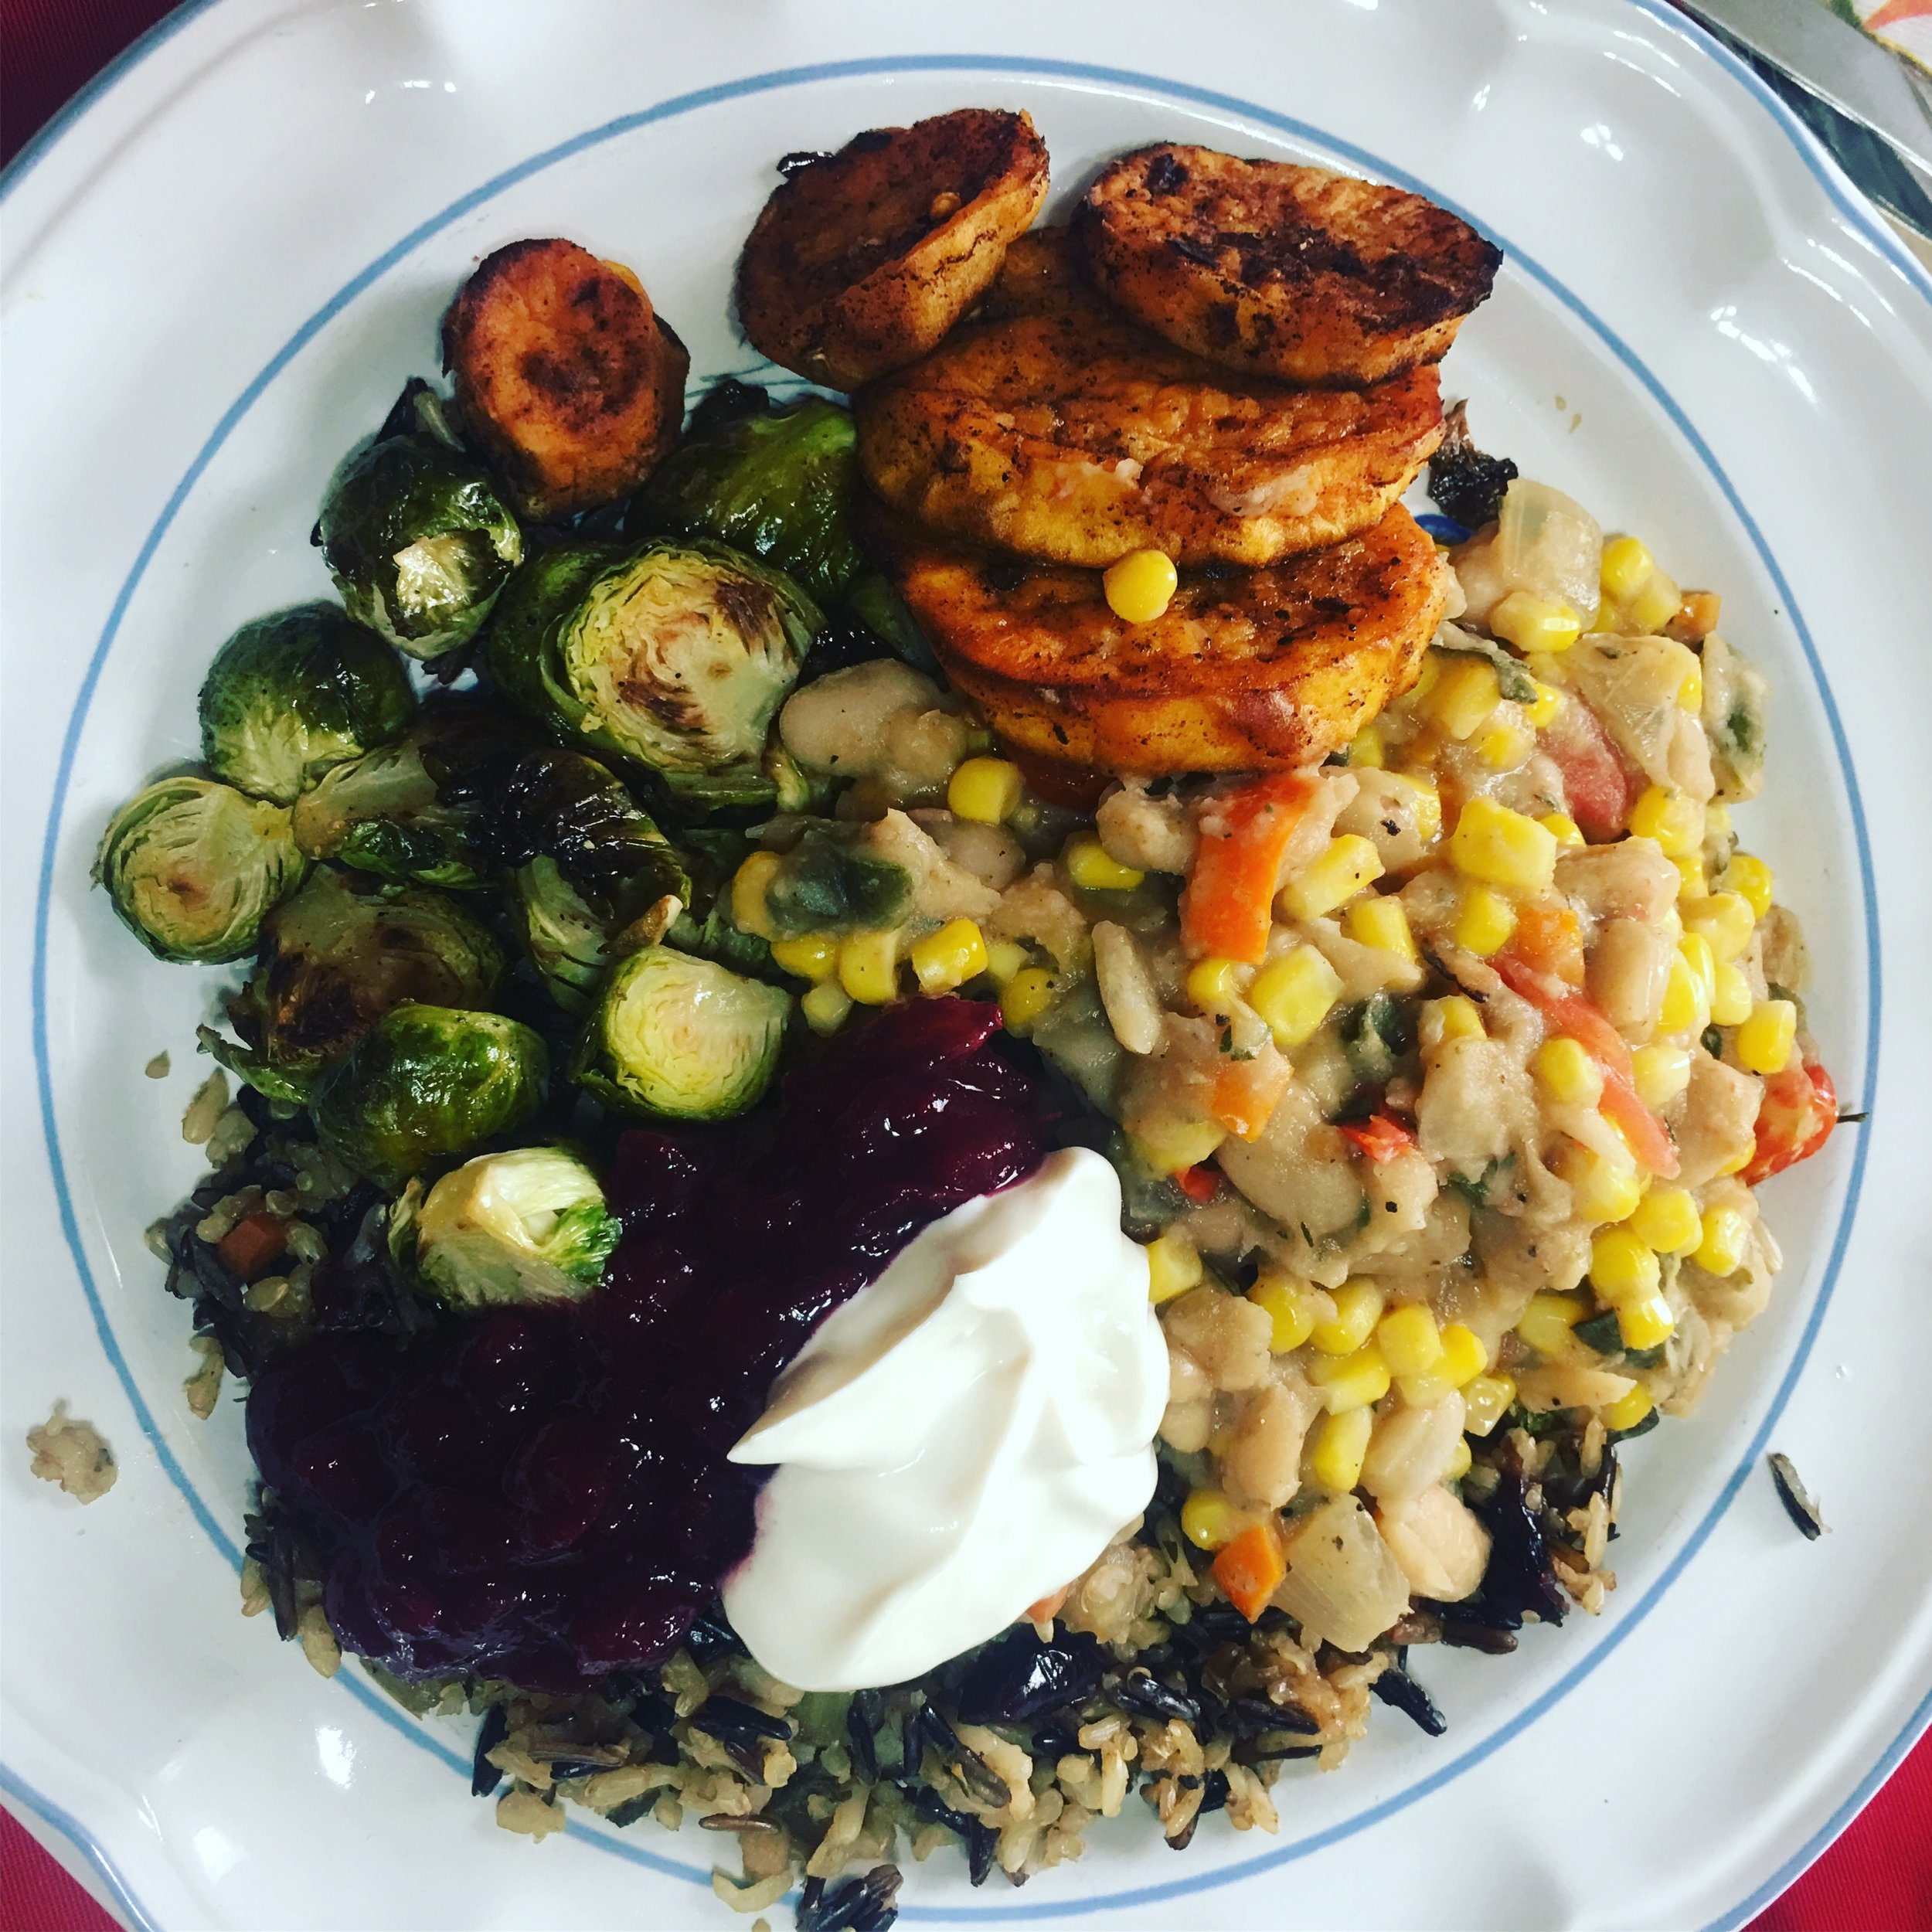 This year's gluten free, vegan Thanksgiving feast: cannellini bean succotash, wild rice quinoa stuffing, roasted Brussels sprouts, roasted sweet potatoes, cranberry sauce, and just a dollop of almond milk Greek yogurt. Awesome.